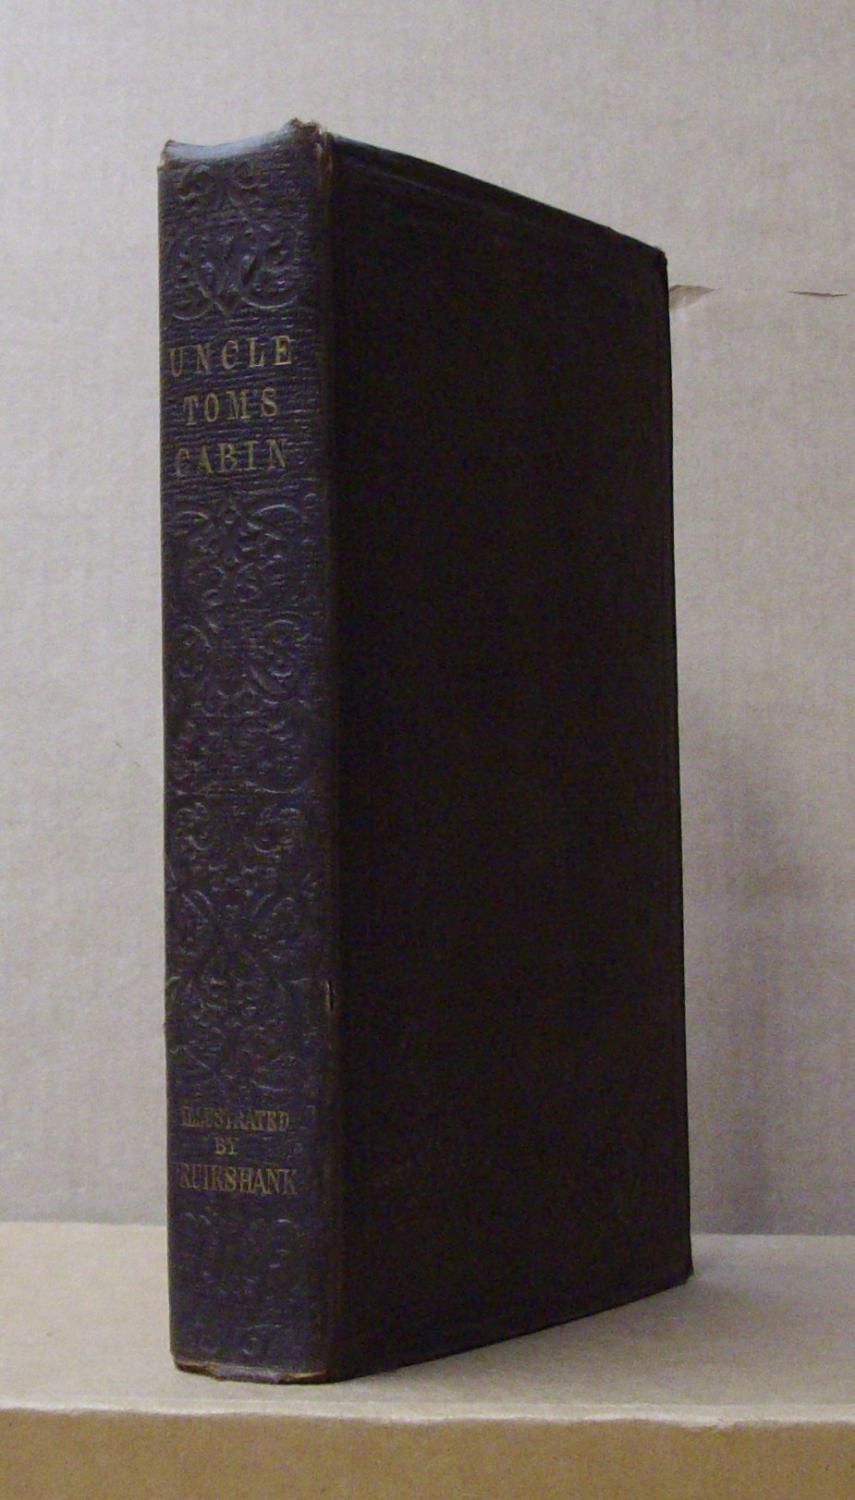 Uncle tom 39 s cabin by stowe harriet beecher john for Uncle tom s cabin first edition value